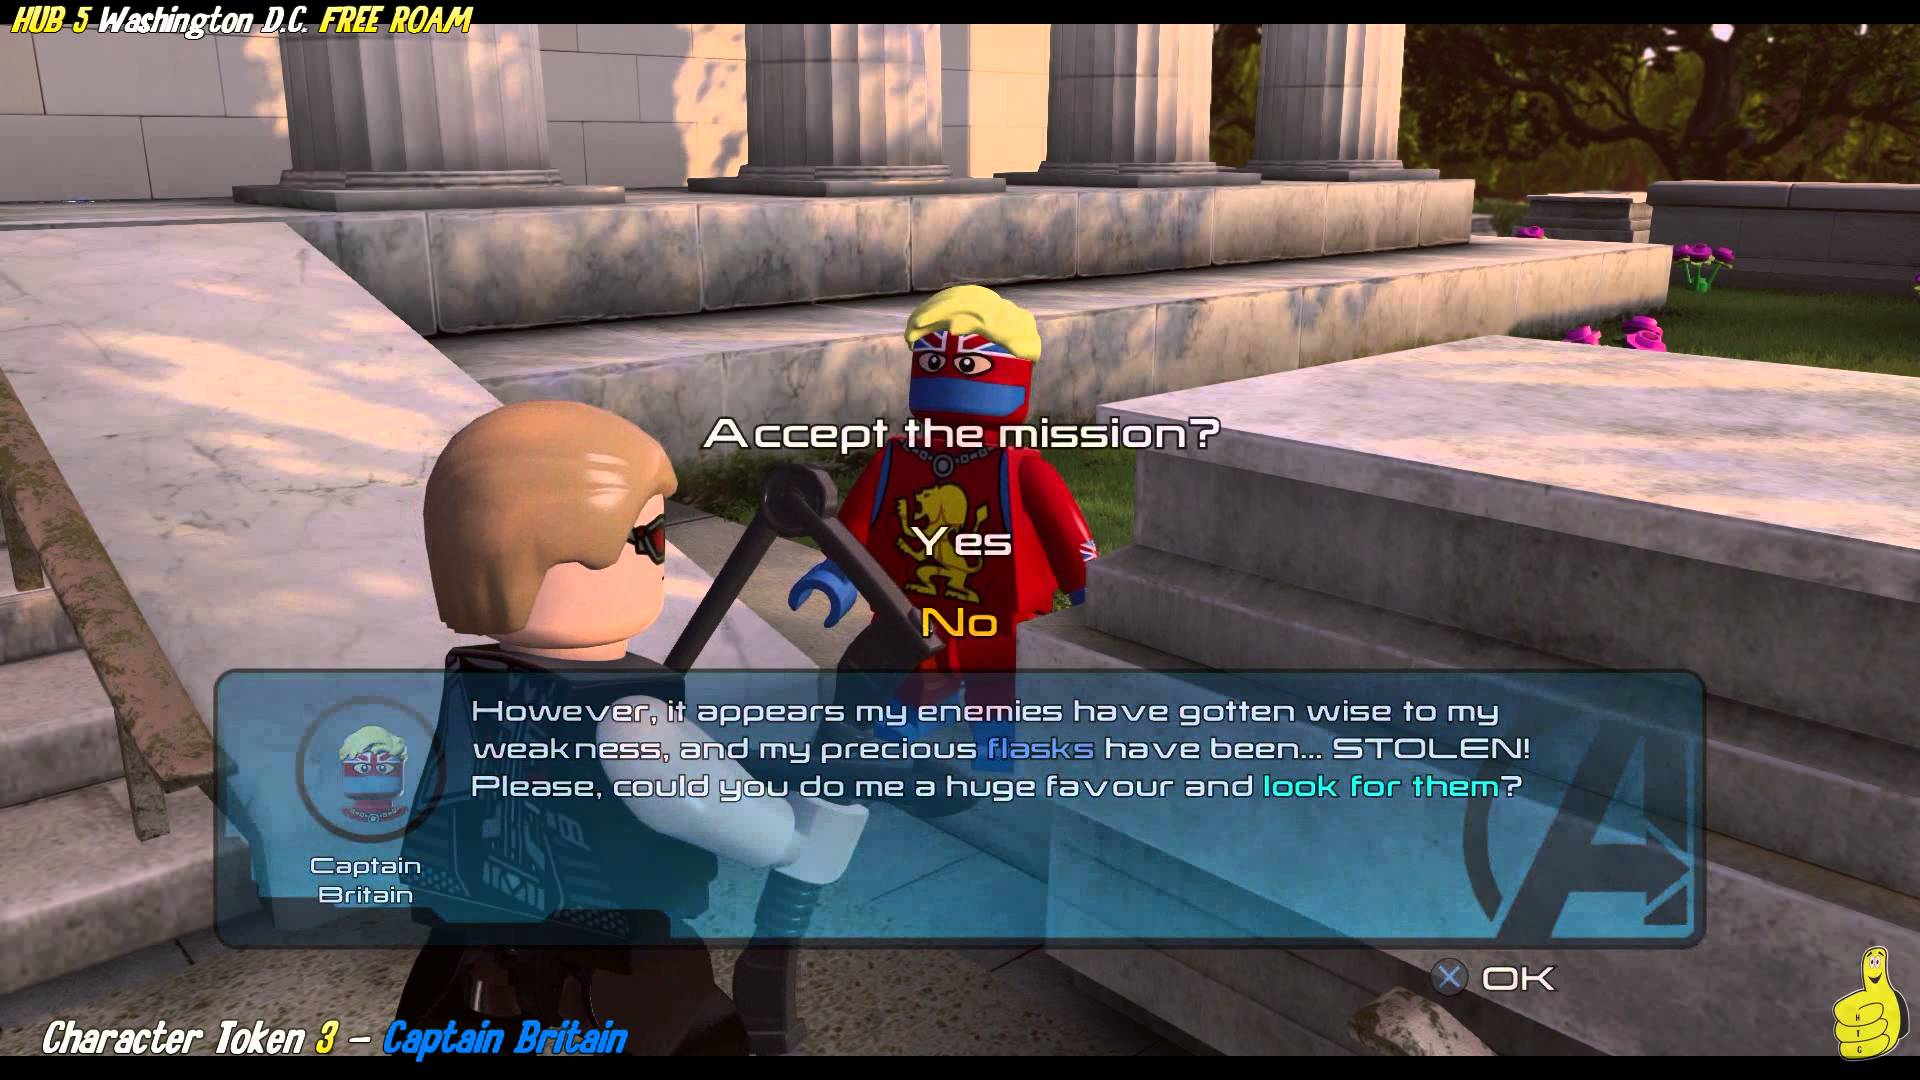 Lego Marvel Avengers Hub 5 Washington D C Free Roam All Collectibles Htg Happy Thumbs Gaming